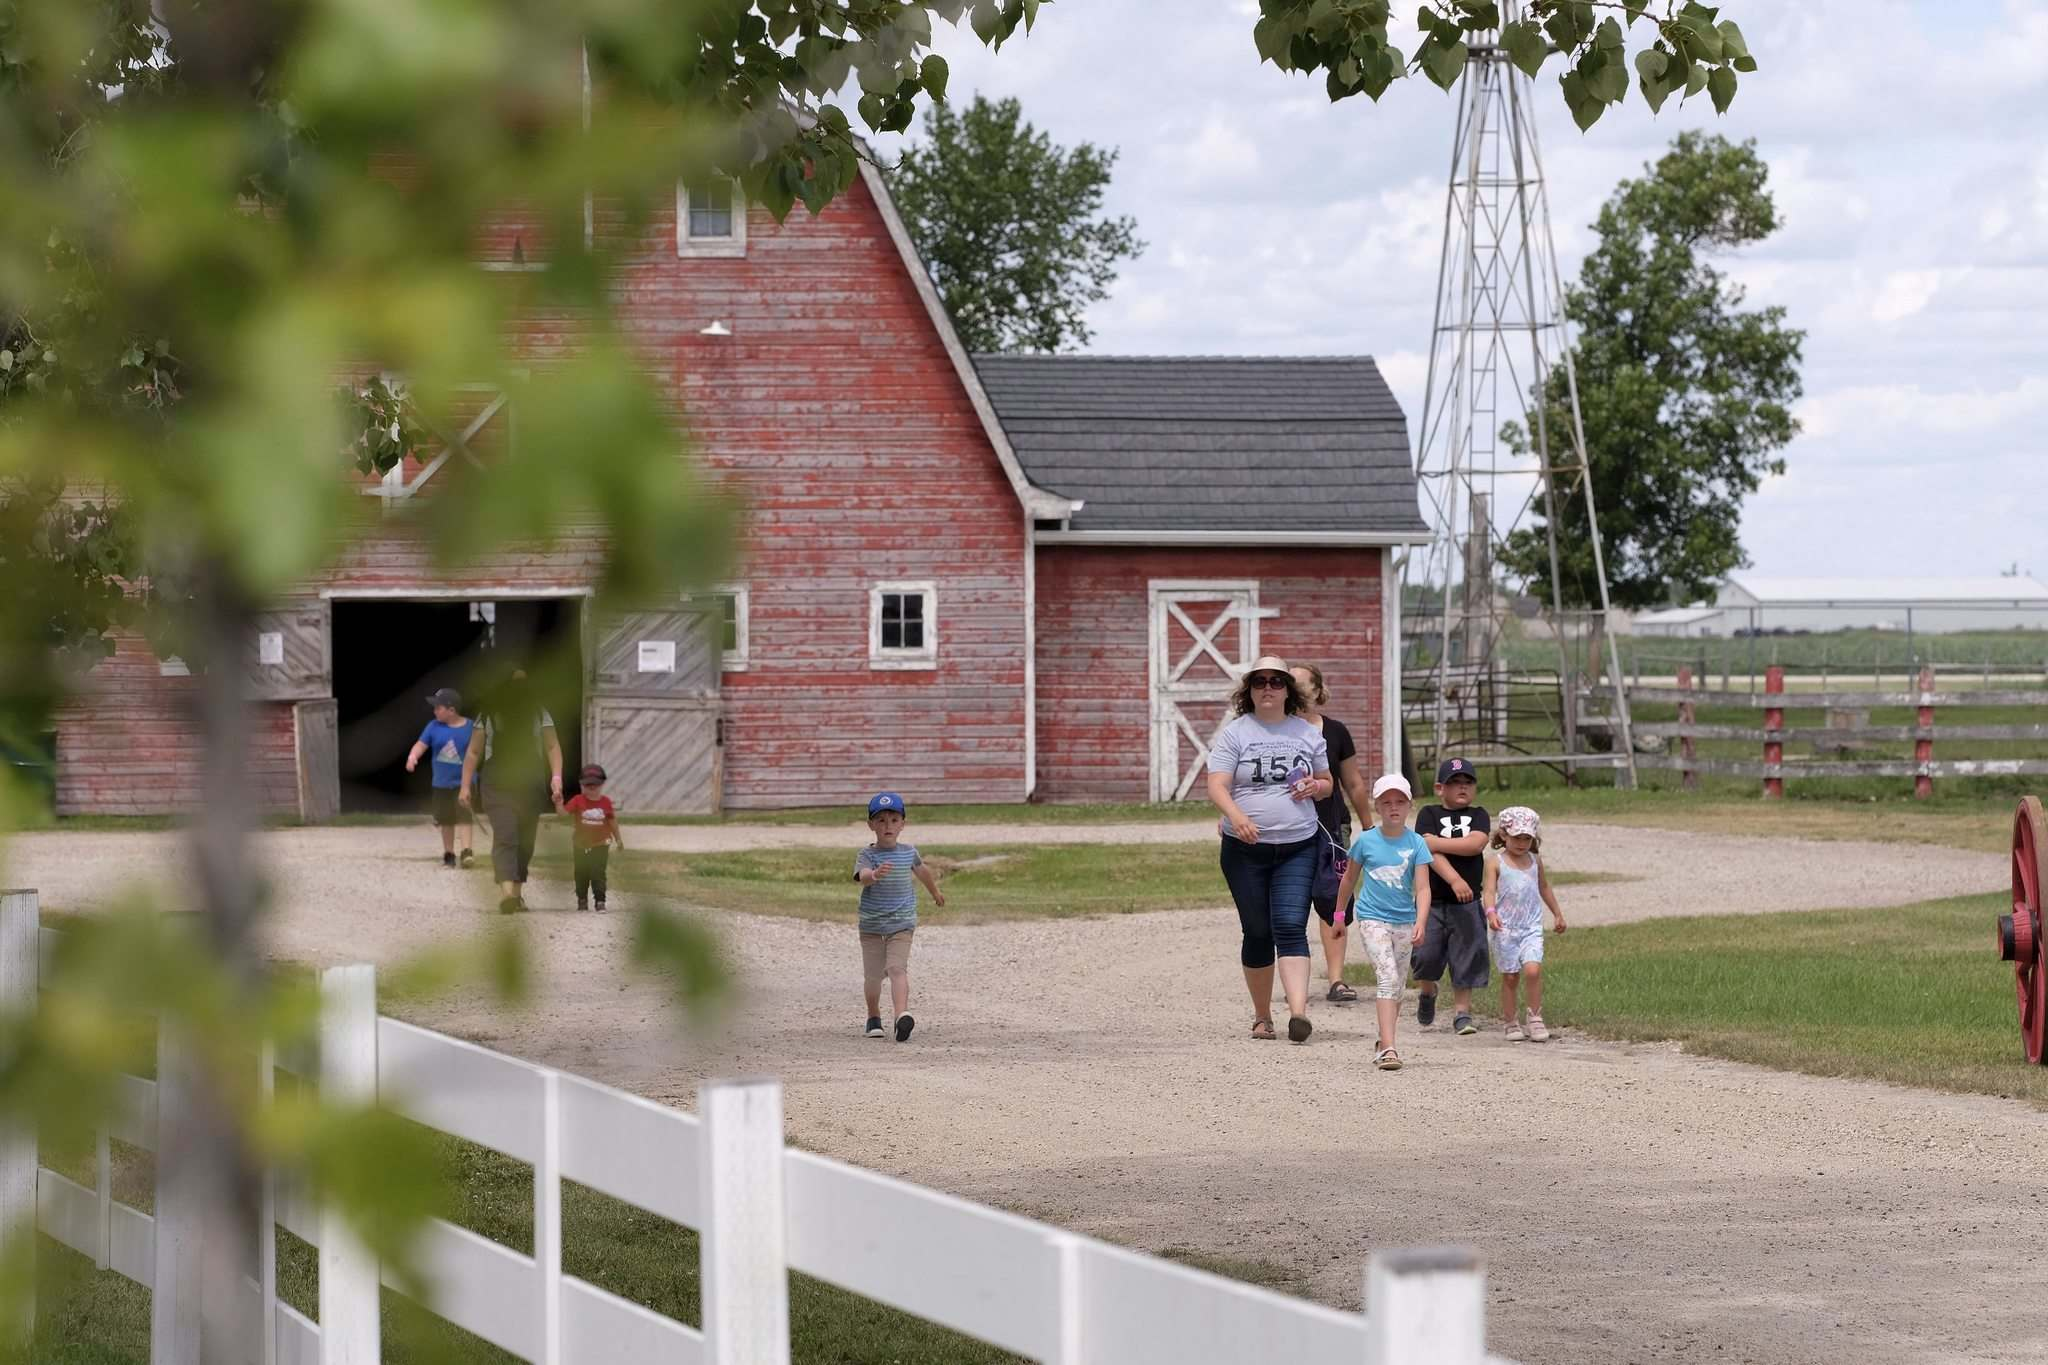 SHANNON VANRAES / WINNIPEG FREE PRESS FILES</p><p>The Mennonite Heritage Village in Steinbach will require visitors to prove they are fully vaccinated against COVID-19.</p>